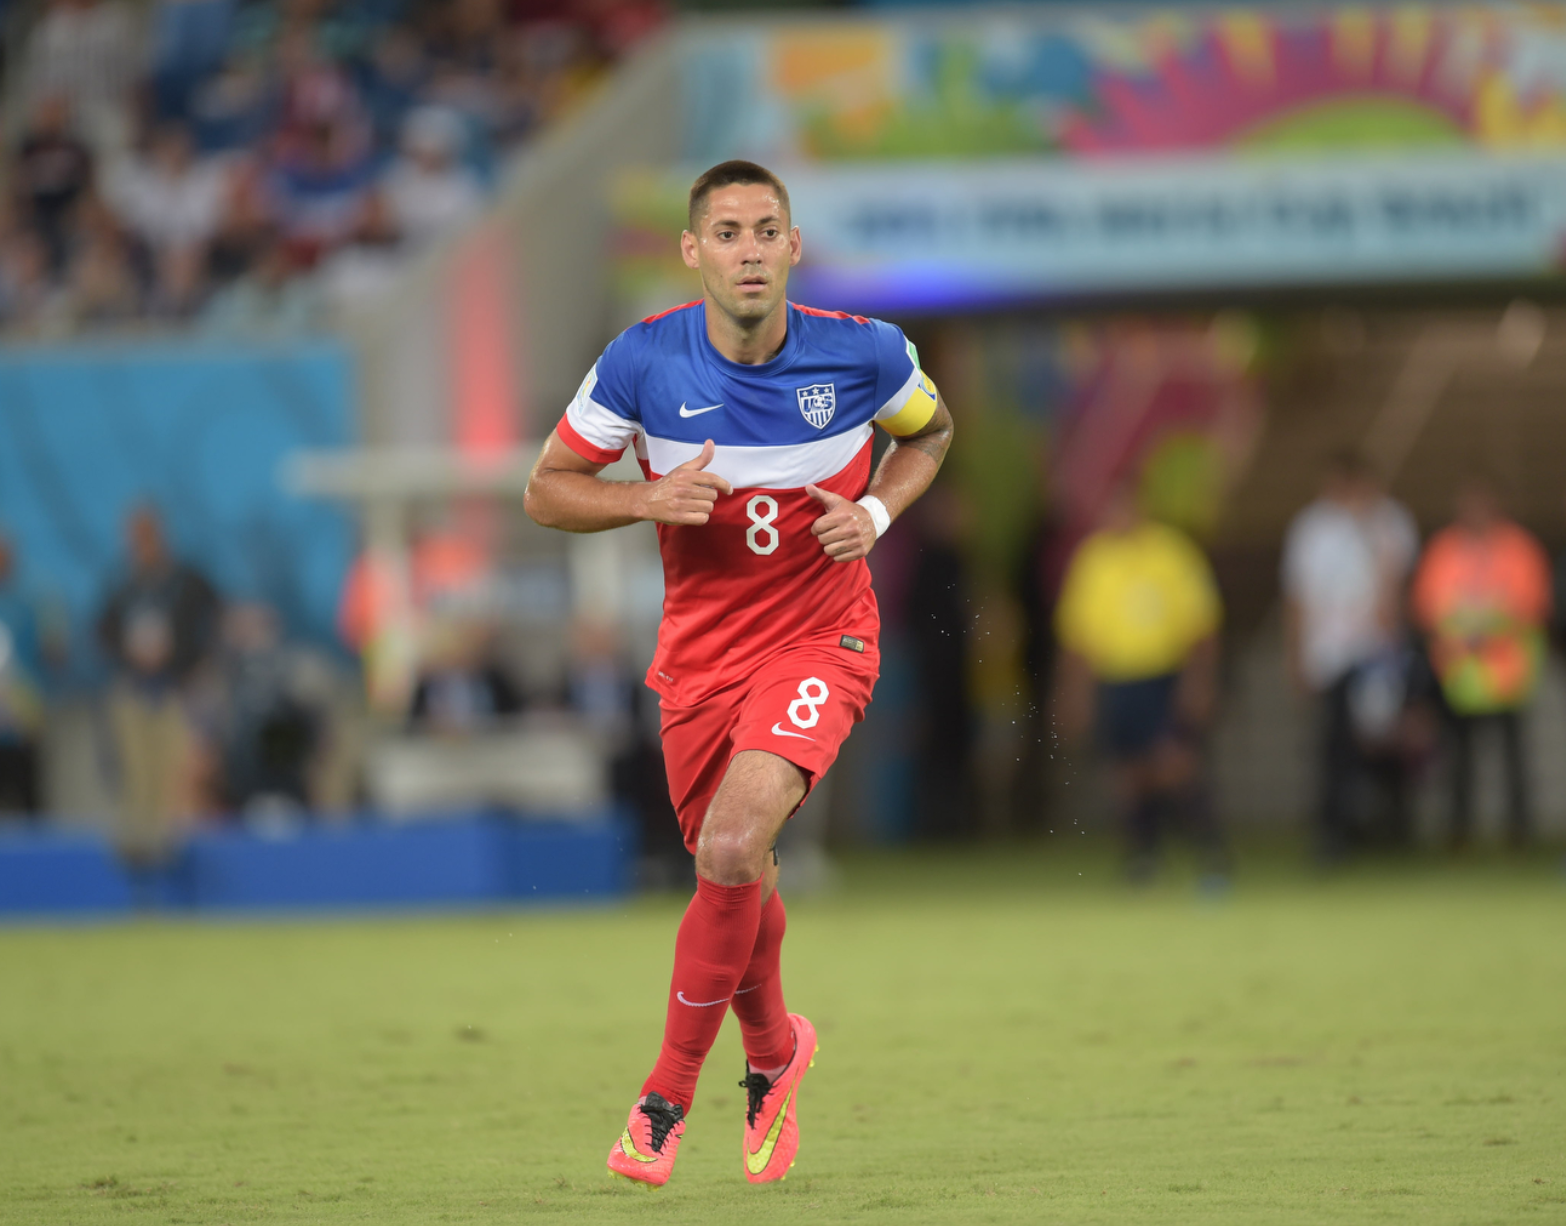 U.S. Soccer Federation Somehow Approved for SBA PPP Loan